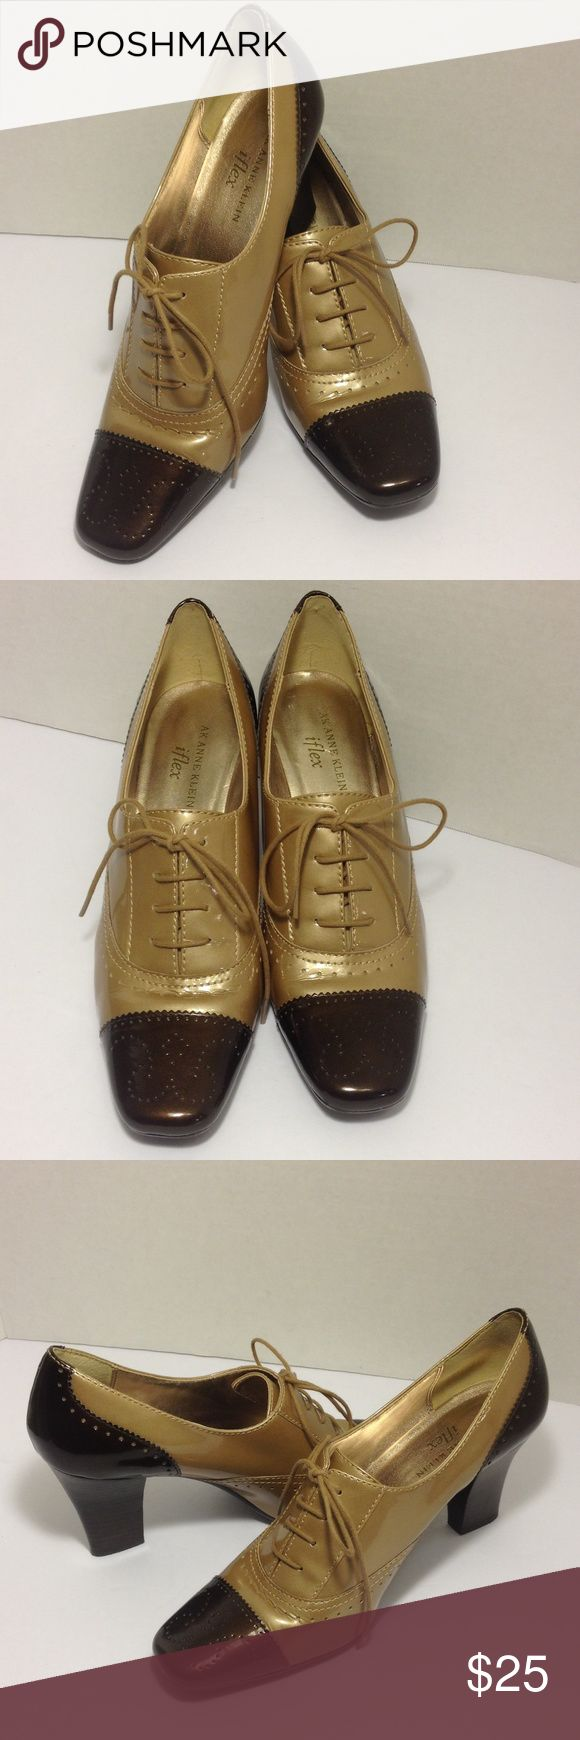 """AK Anne Klein two tone heels Worn once in good clean condition, lace up loafers with 3"""" leather heels Anne Klein Shoes Heels"""